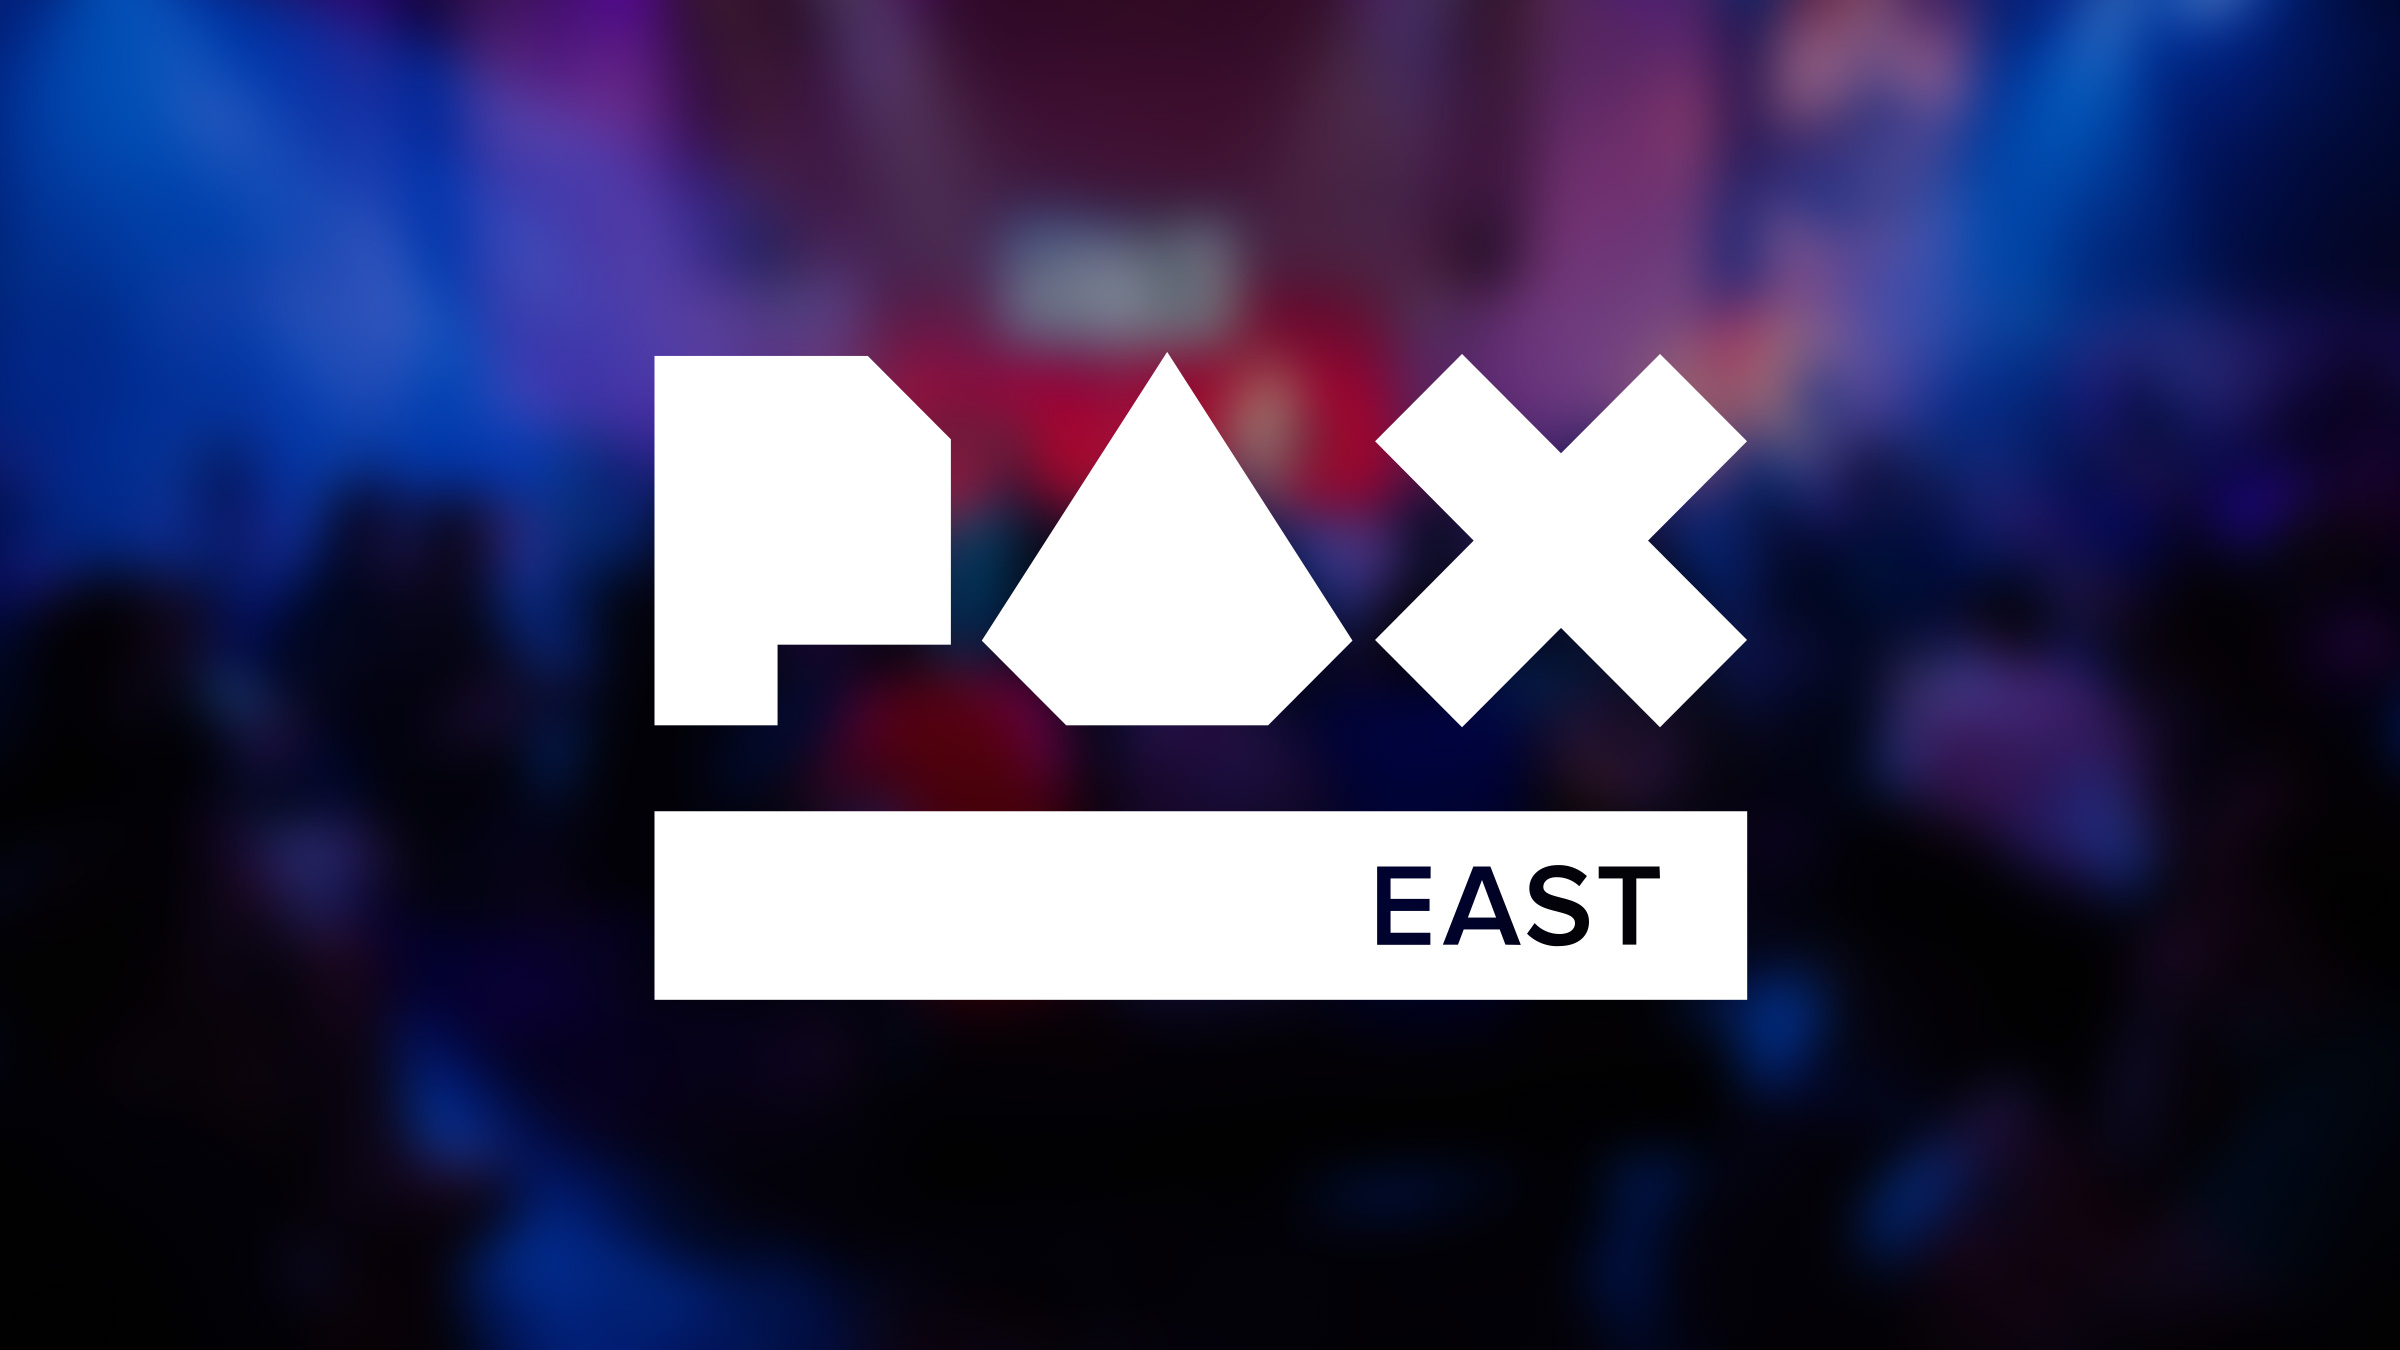 World of Warcraft is Headed to PAX East!